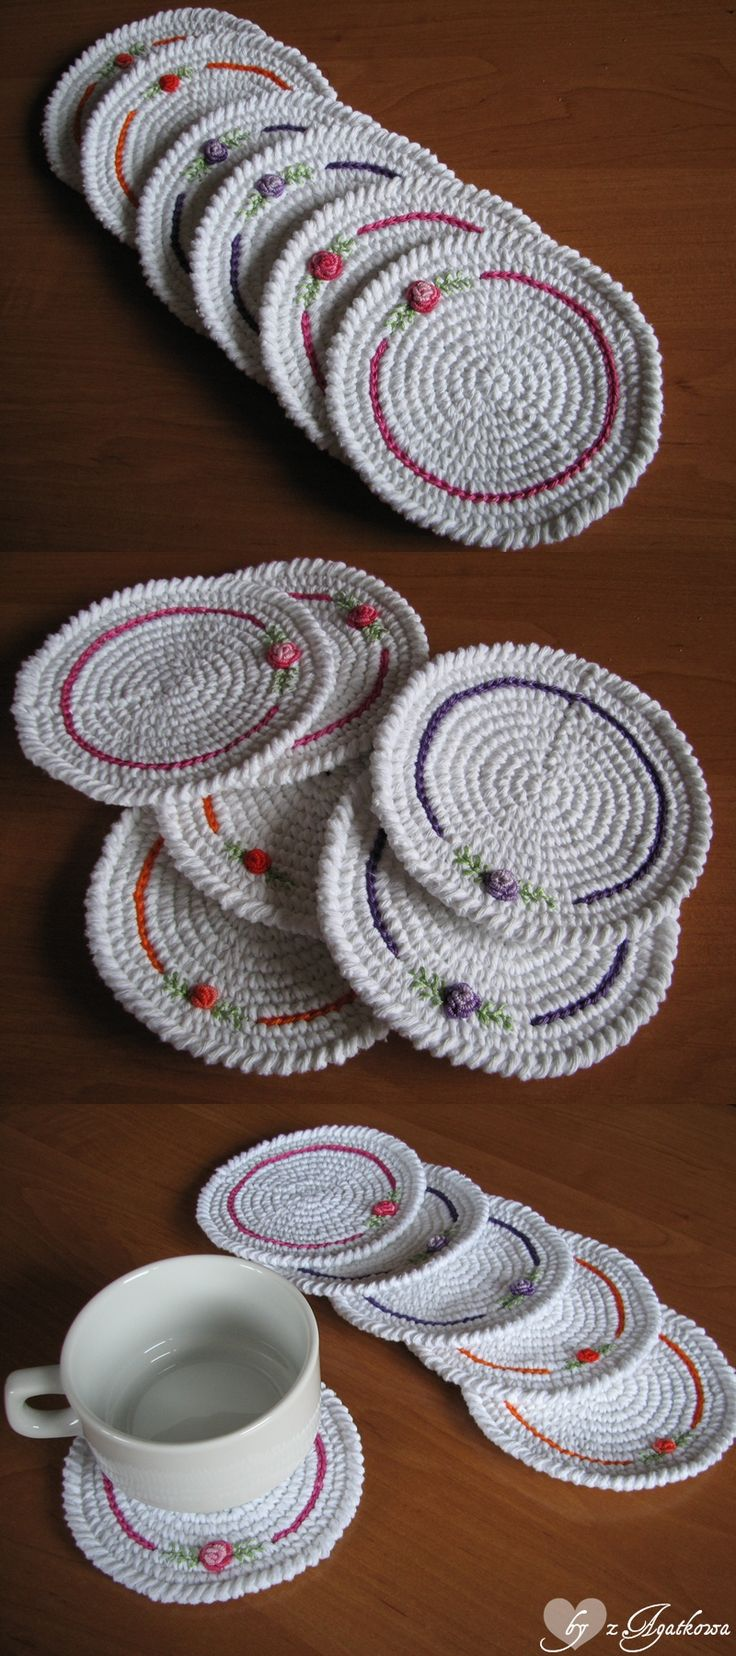 Lovely crocheted coasters with embroidered roses.